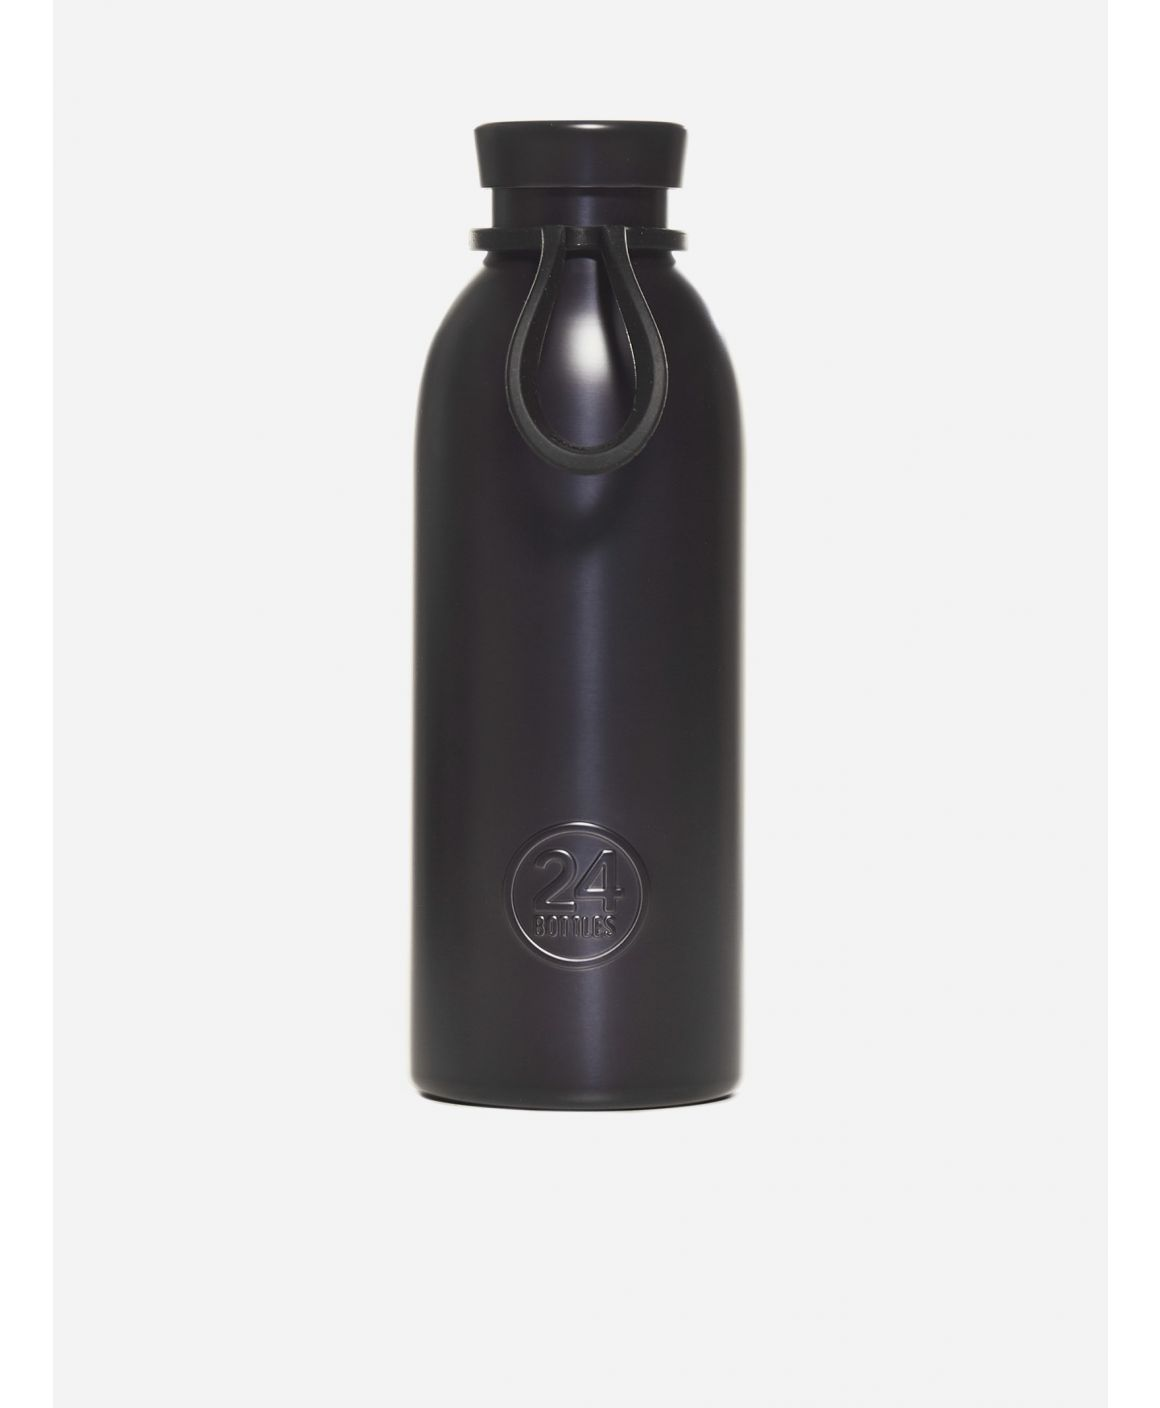 Clima Bottle 050 Embossed Reserve Limited Edition